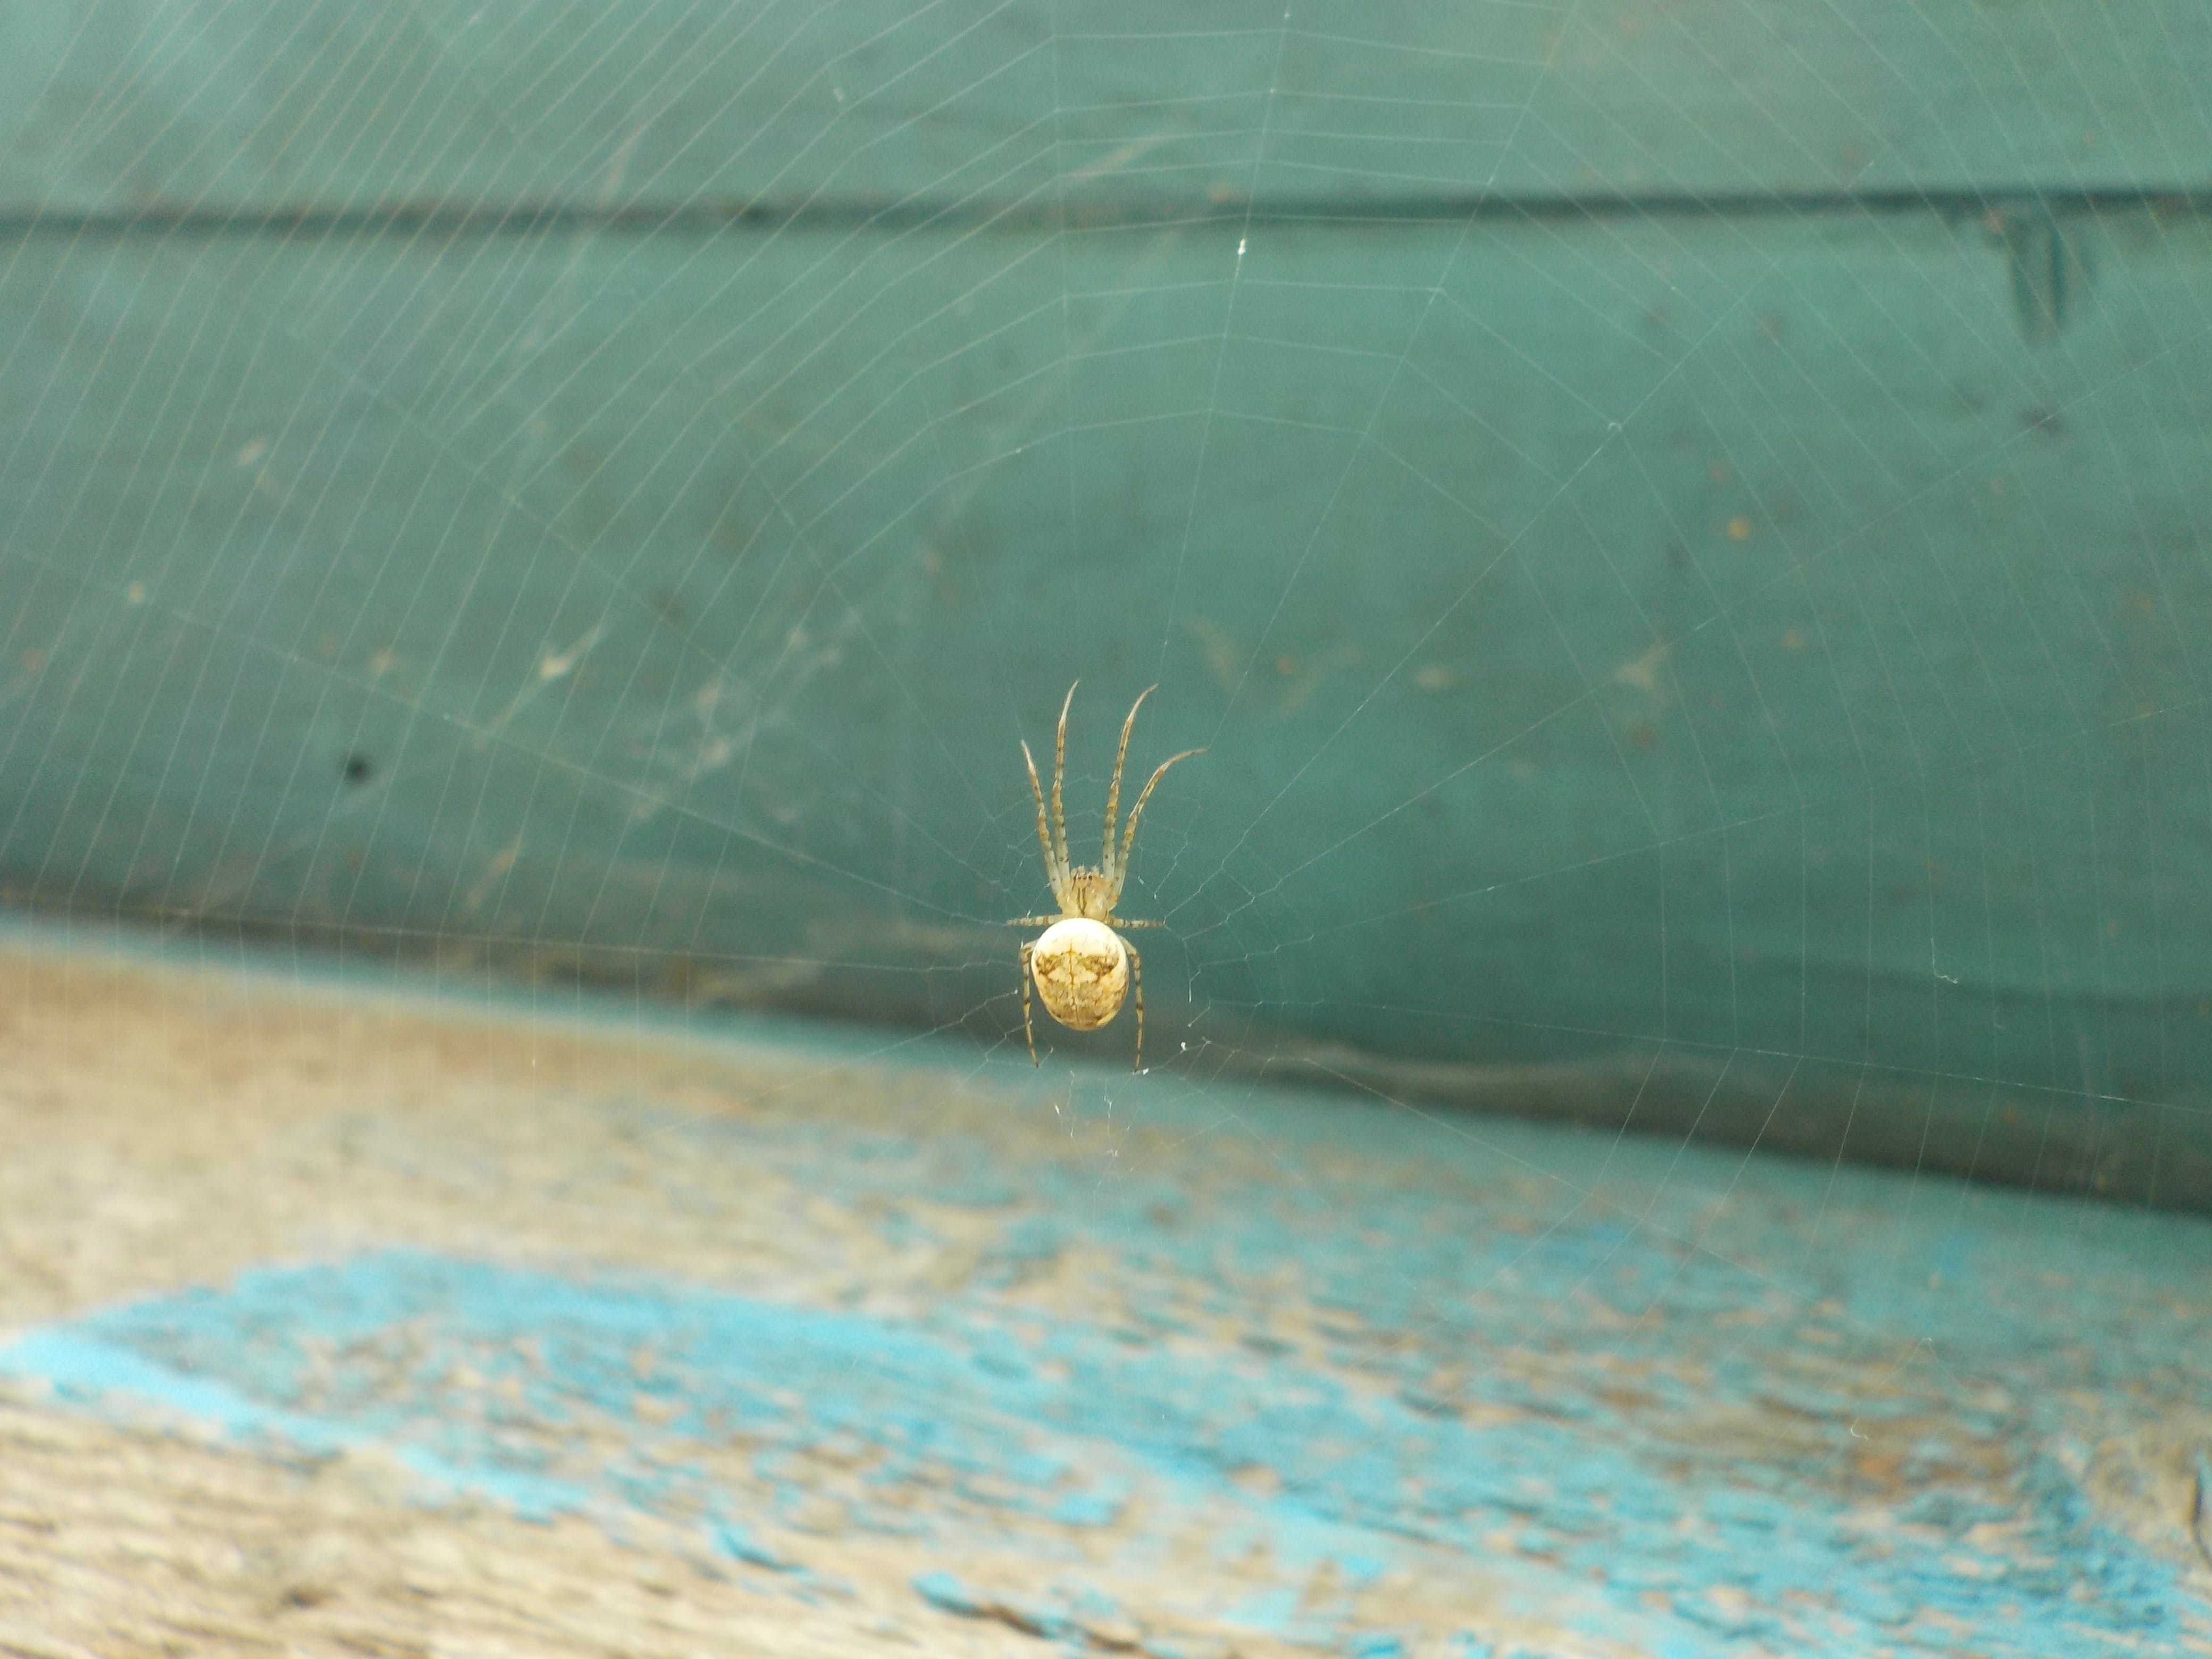 Free stock photo of spider, web